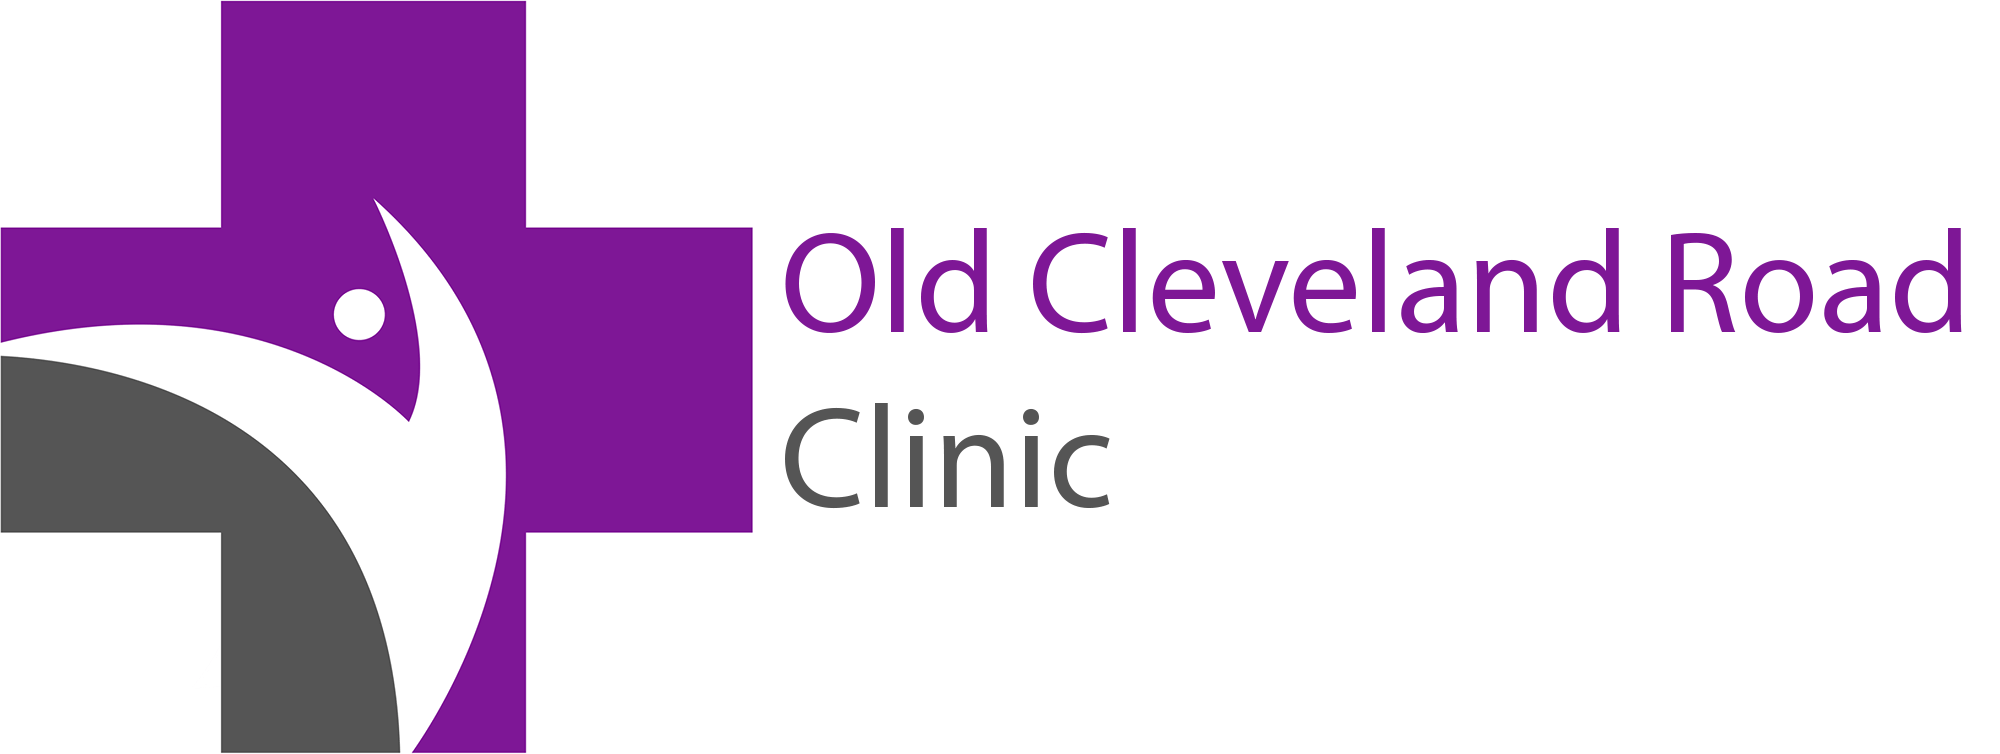 Old Cleveland Road Clinic Logo